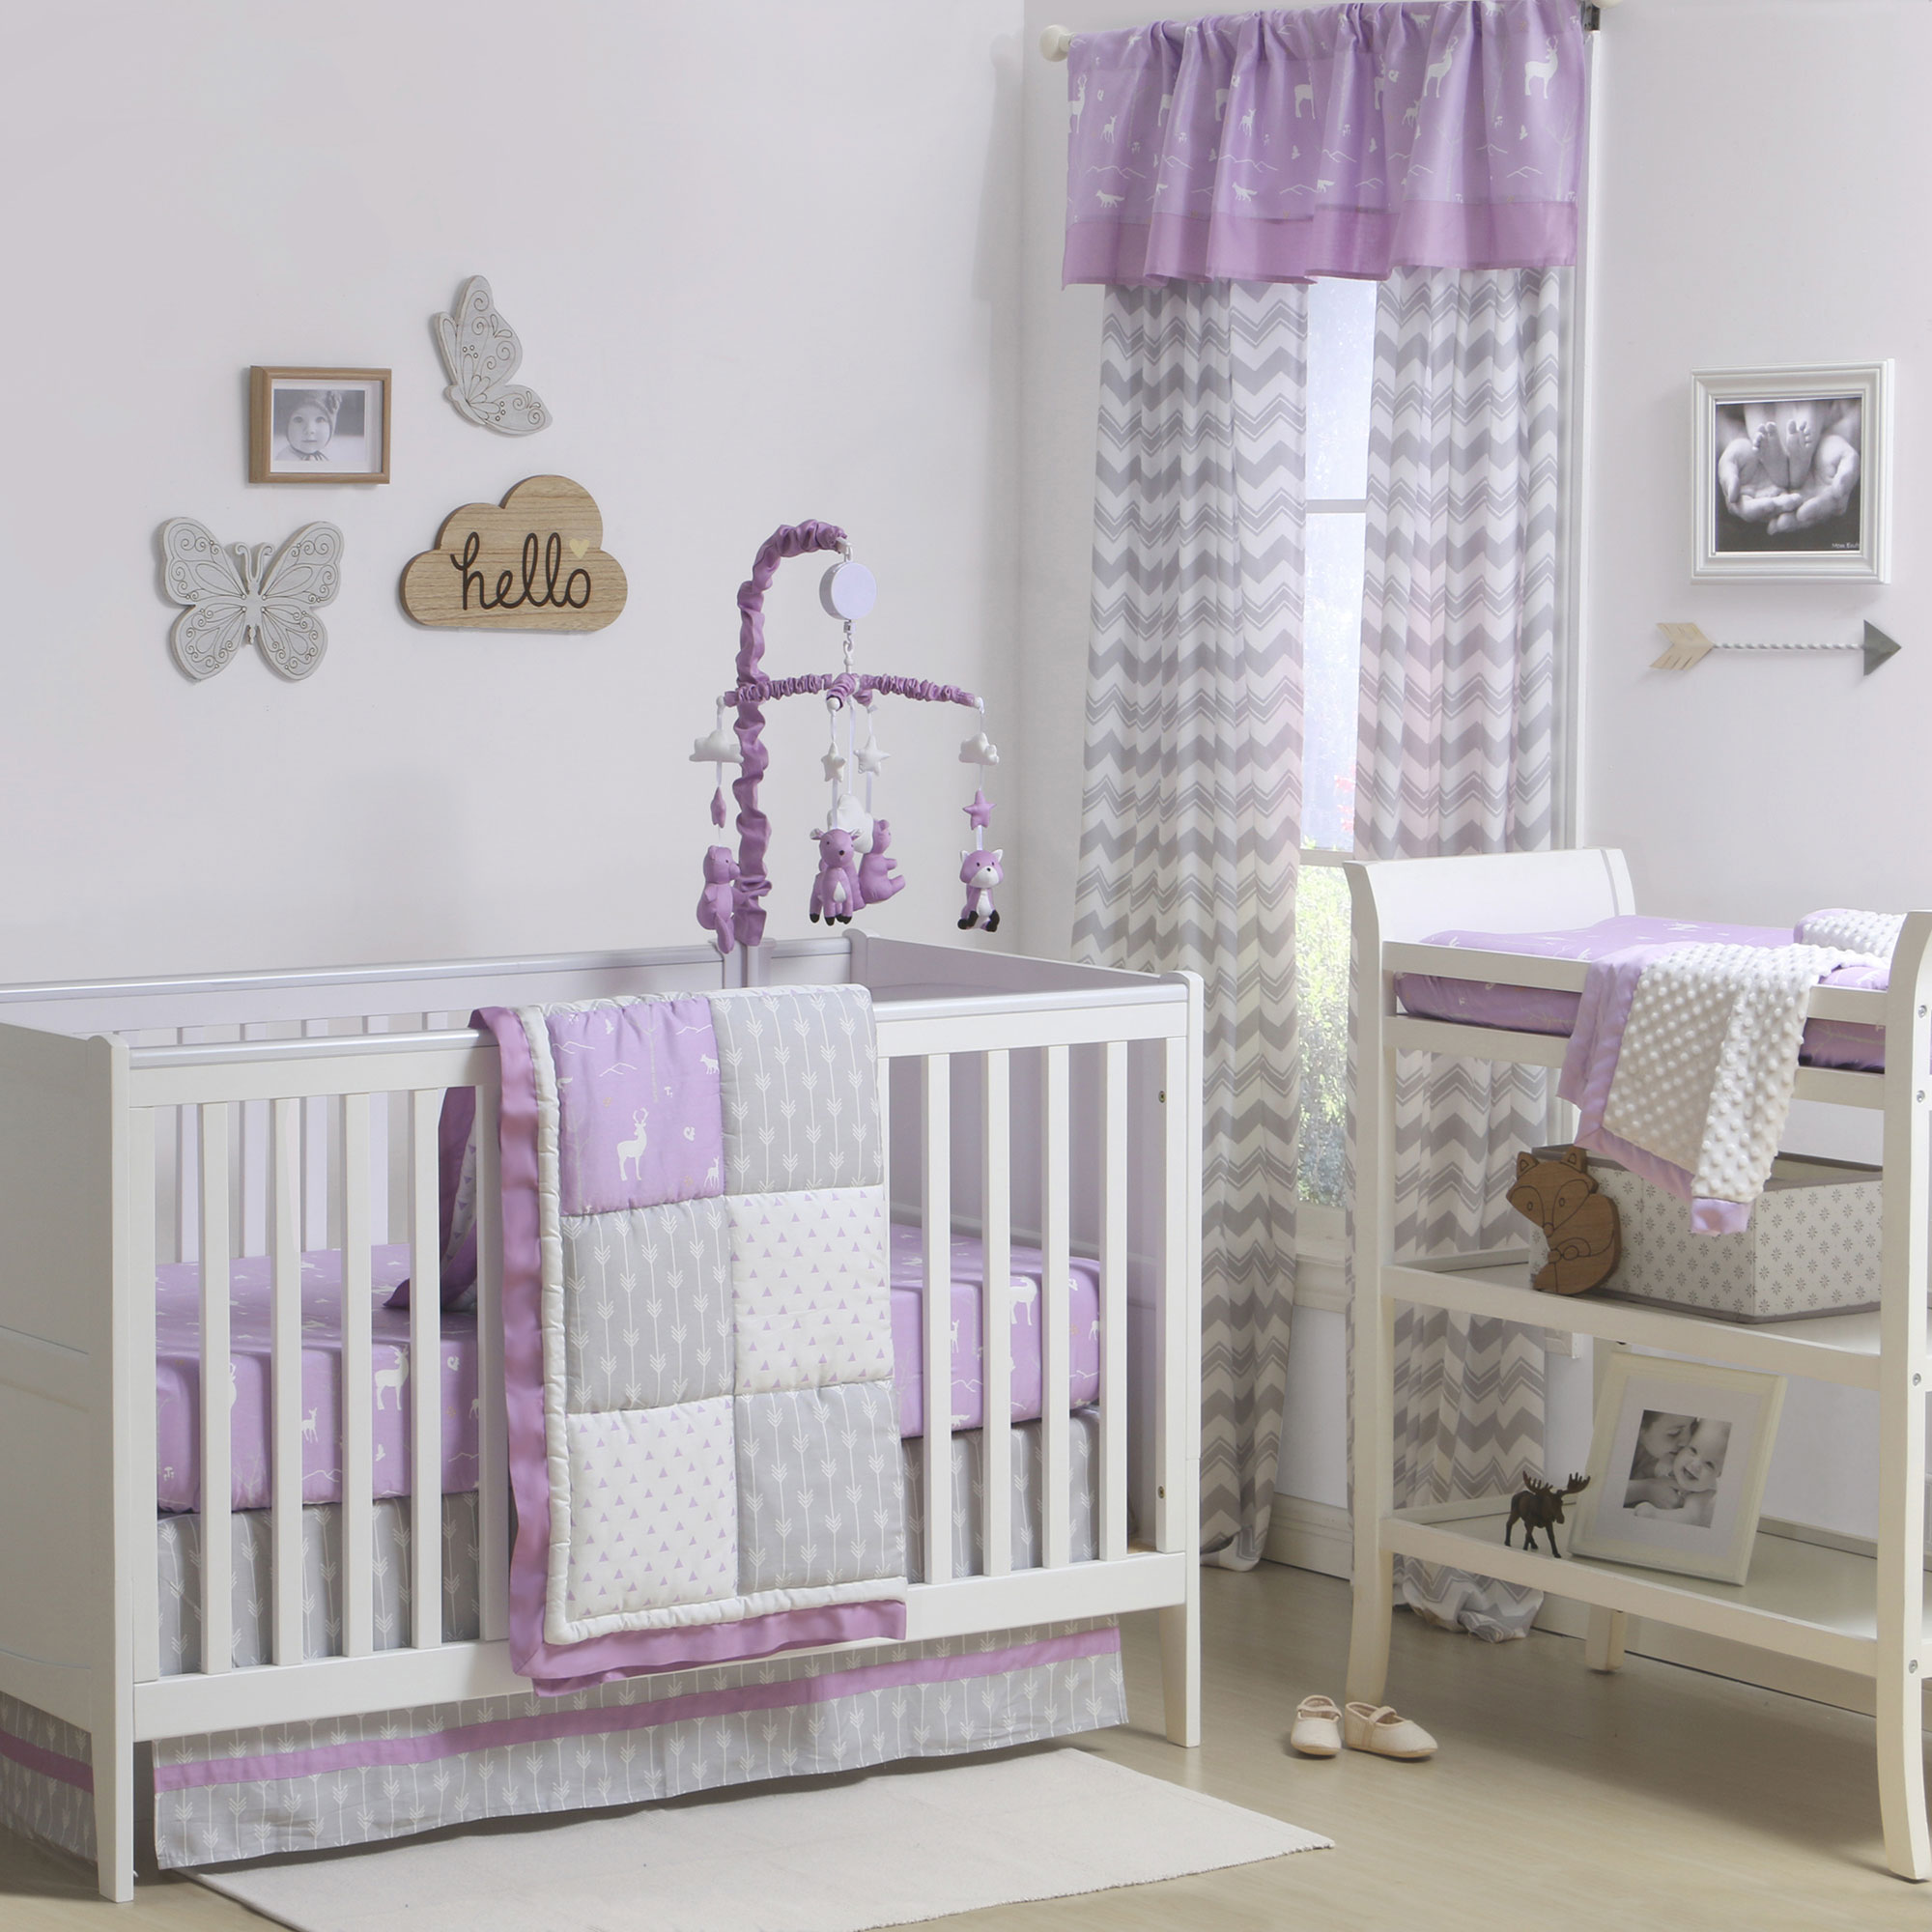 Purple and Grey Woodland and Geometric 4 Piece Crib Bedding by The Peanut Shell